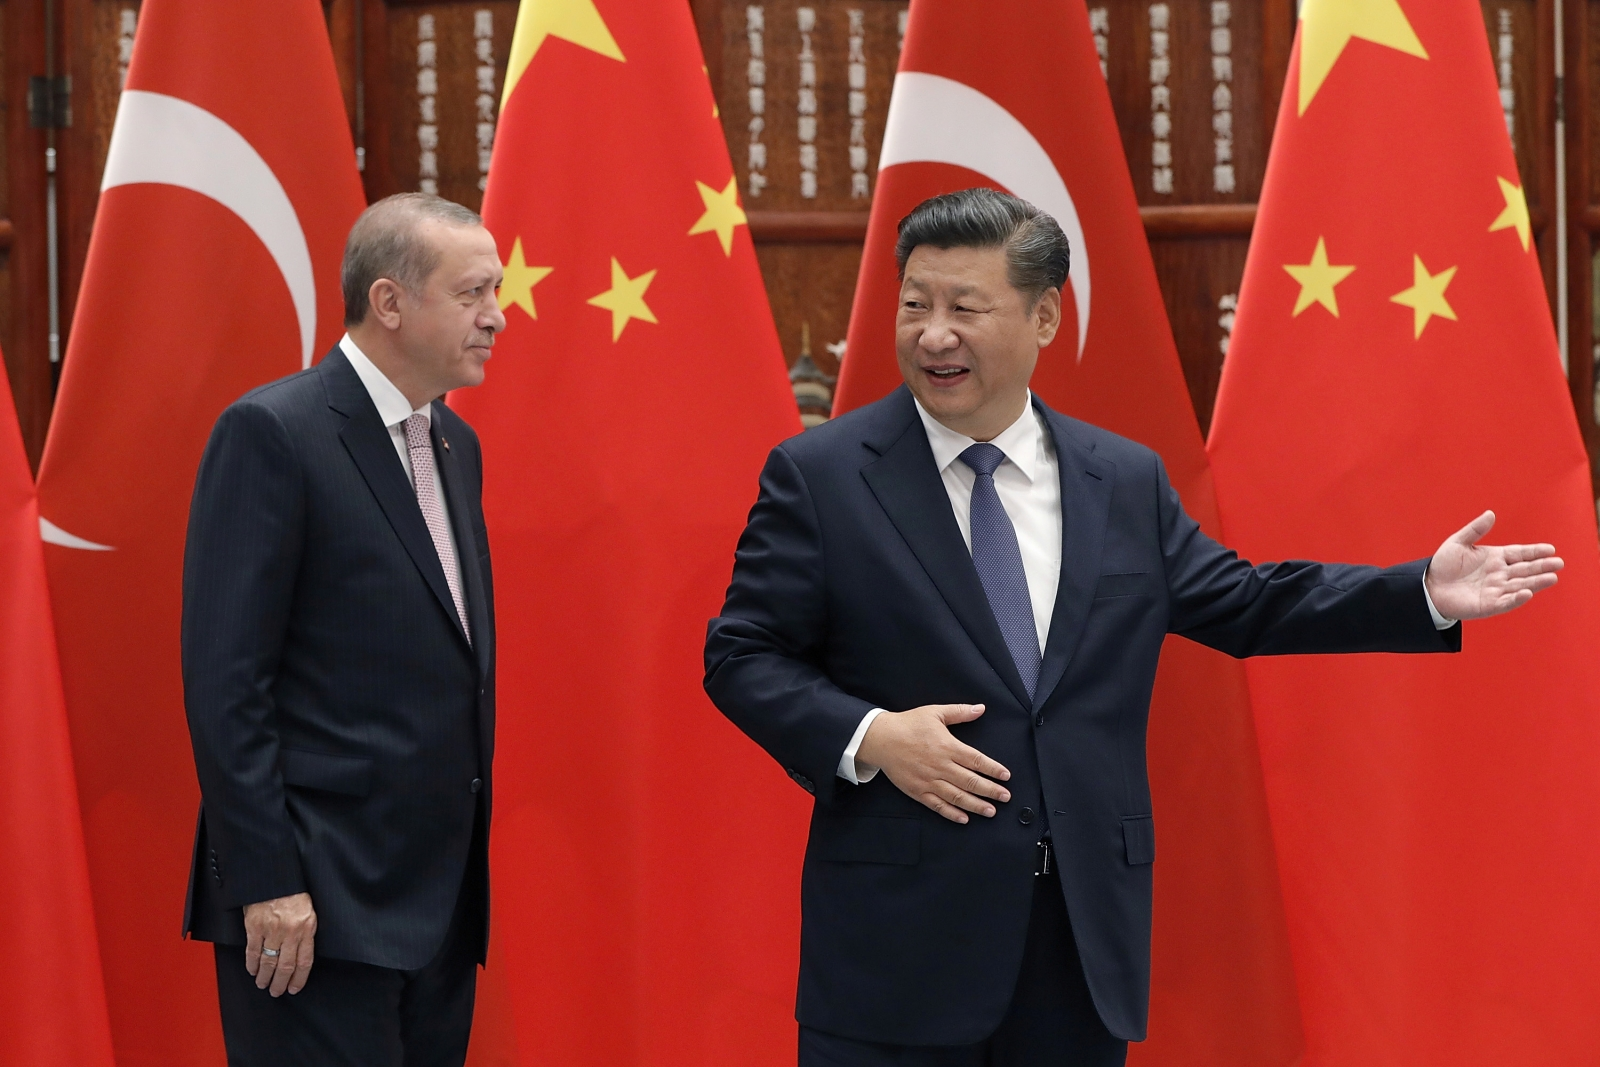 President Xi Jinping of China and President Recep Tayyip Erdogan of Turkey, meeting at the G20 Summit. (Photo courtesy of International Business Times)